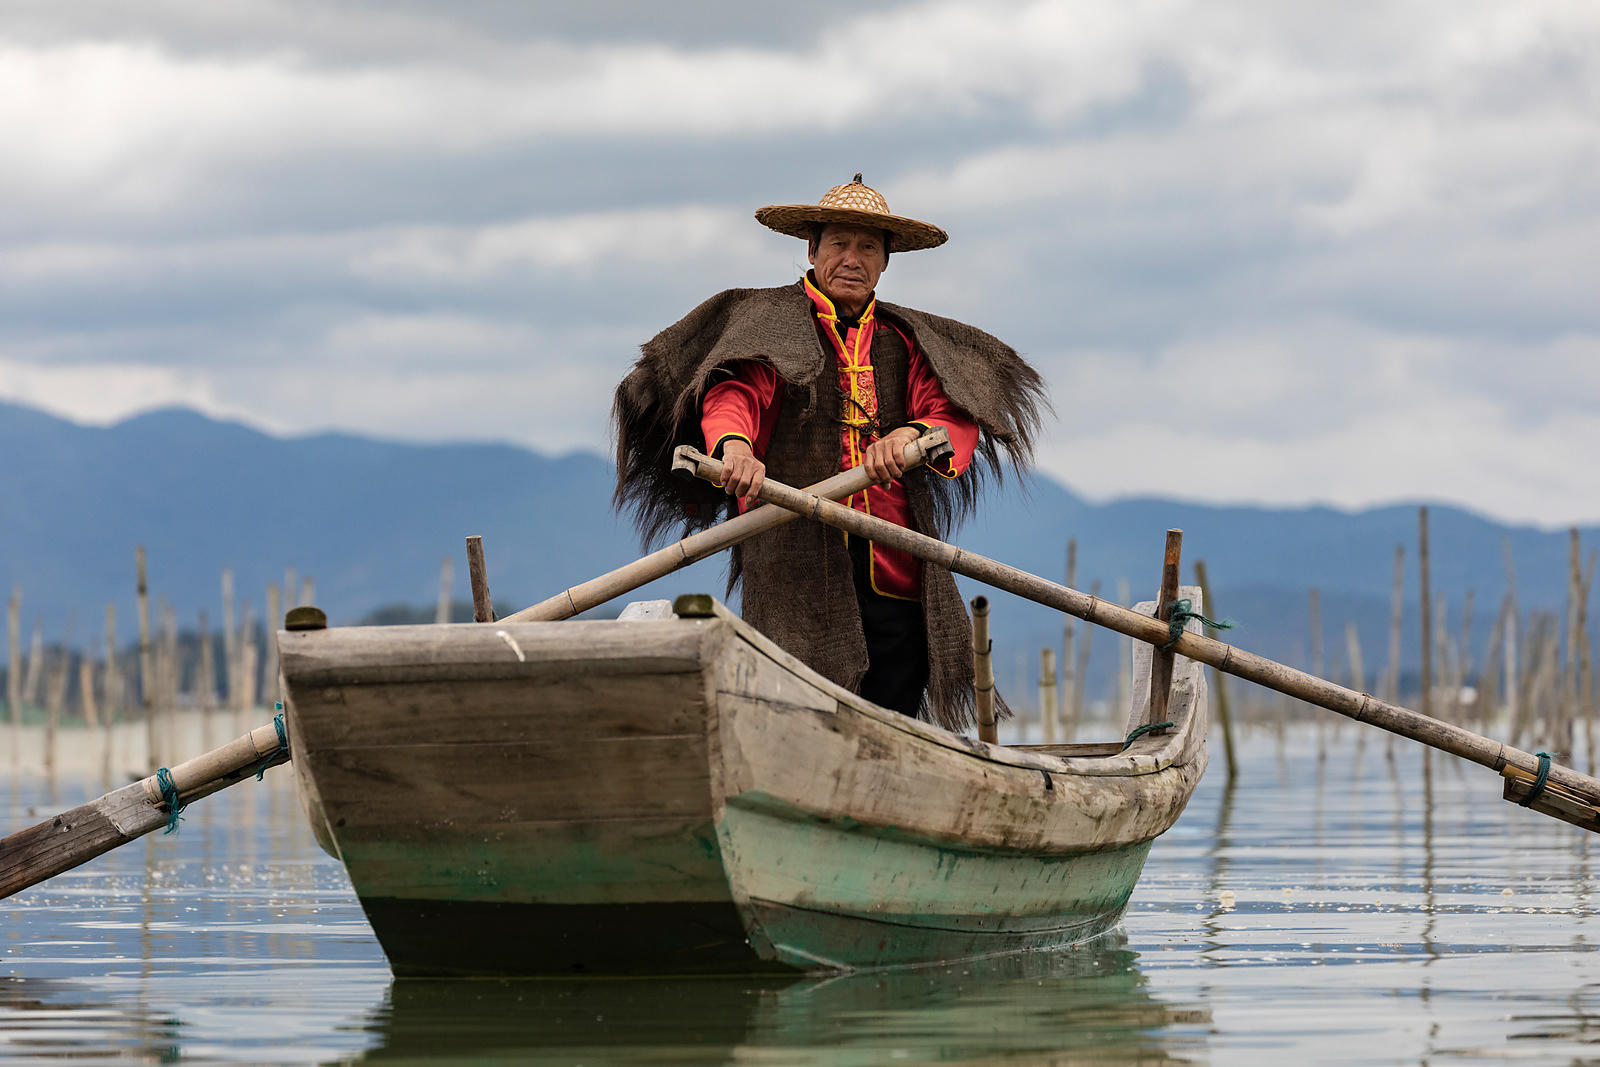 Fisherman Wearing a Traditional Outfit